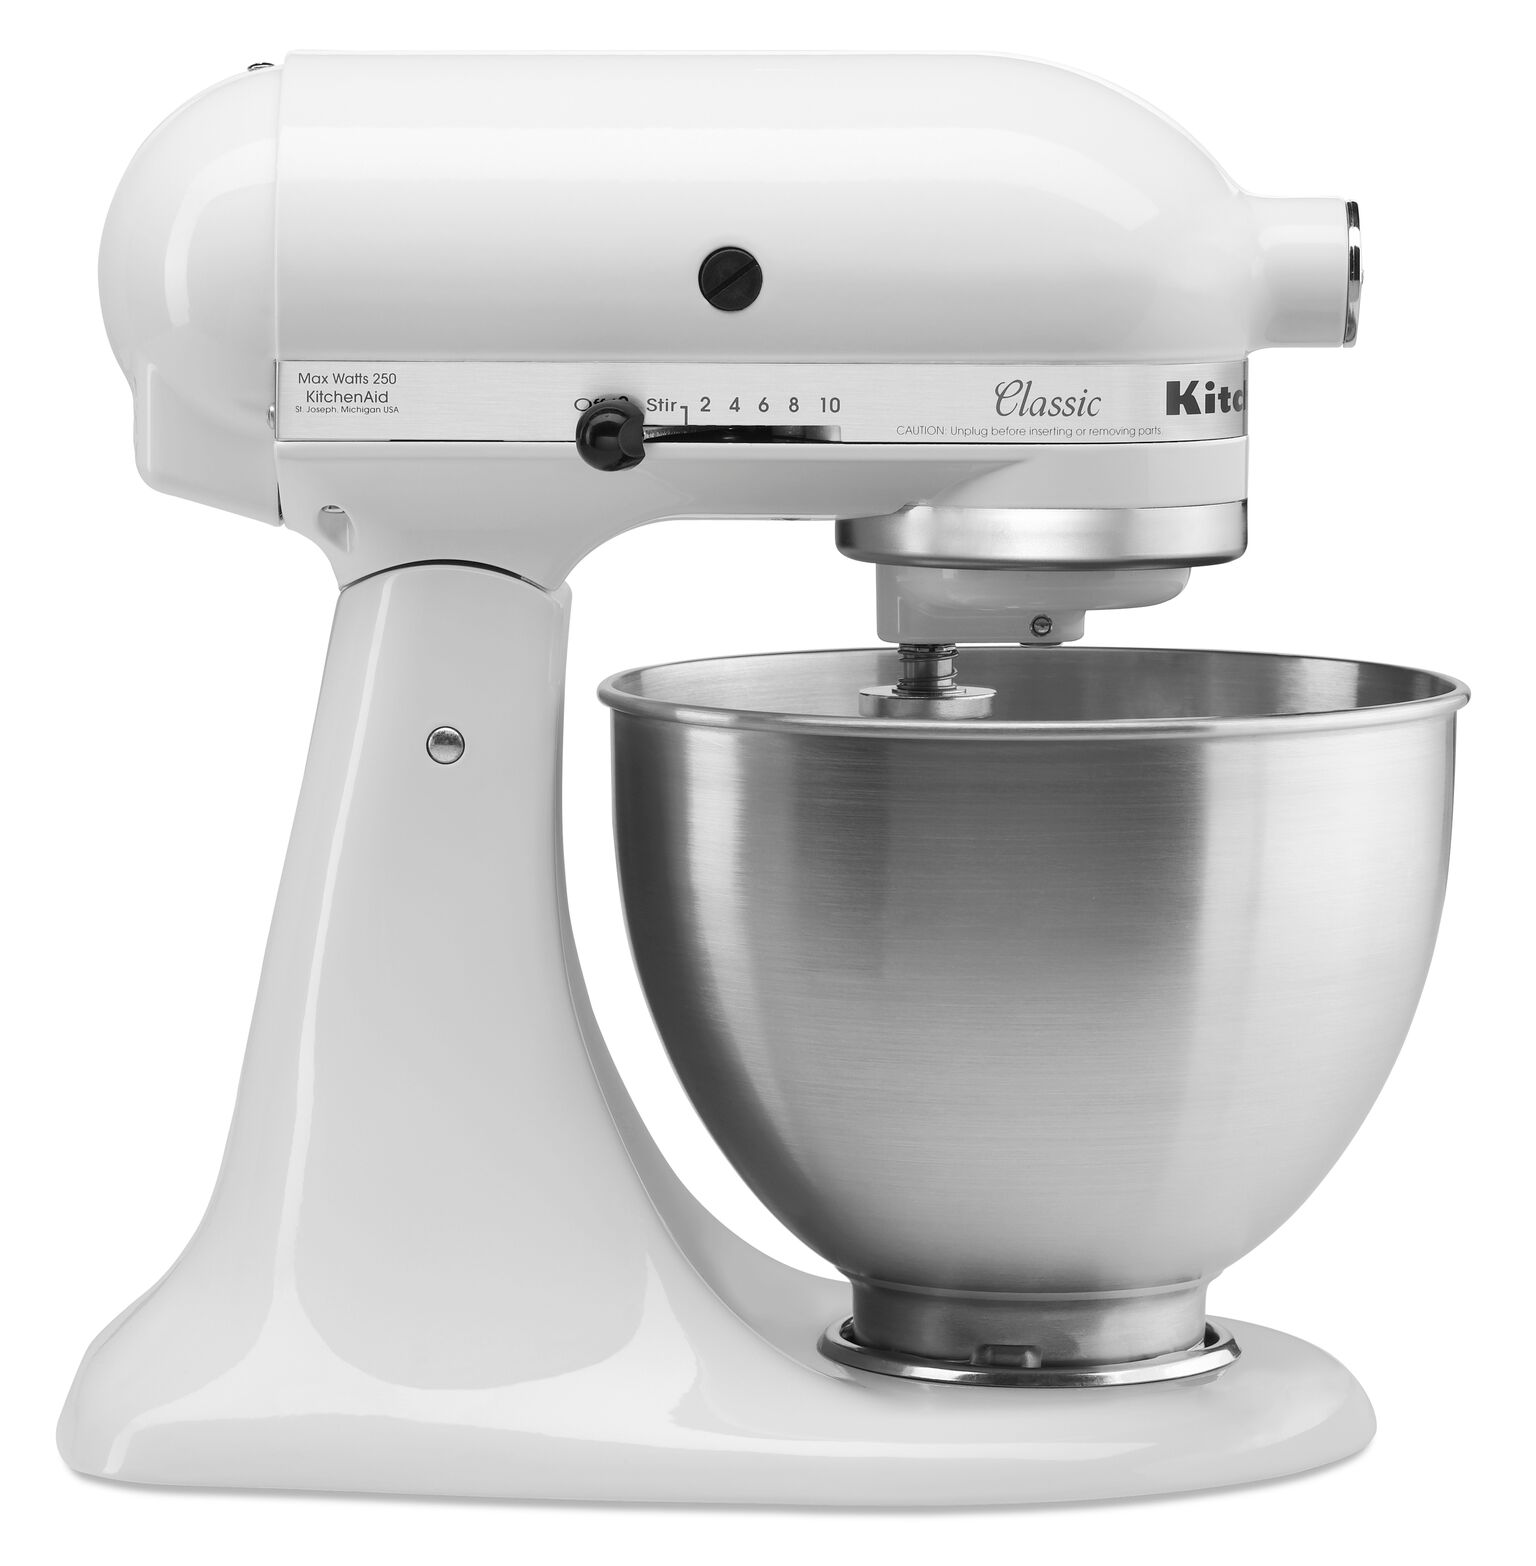 KitchenAid Classic Series 4.5 Quart Tilt Head Stand Mixer, White (K45SSWH)